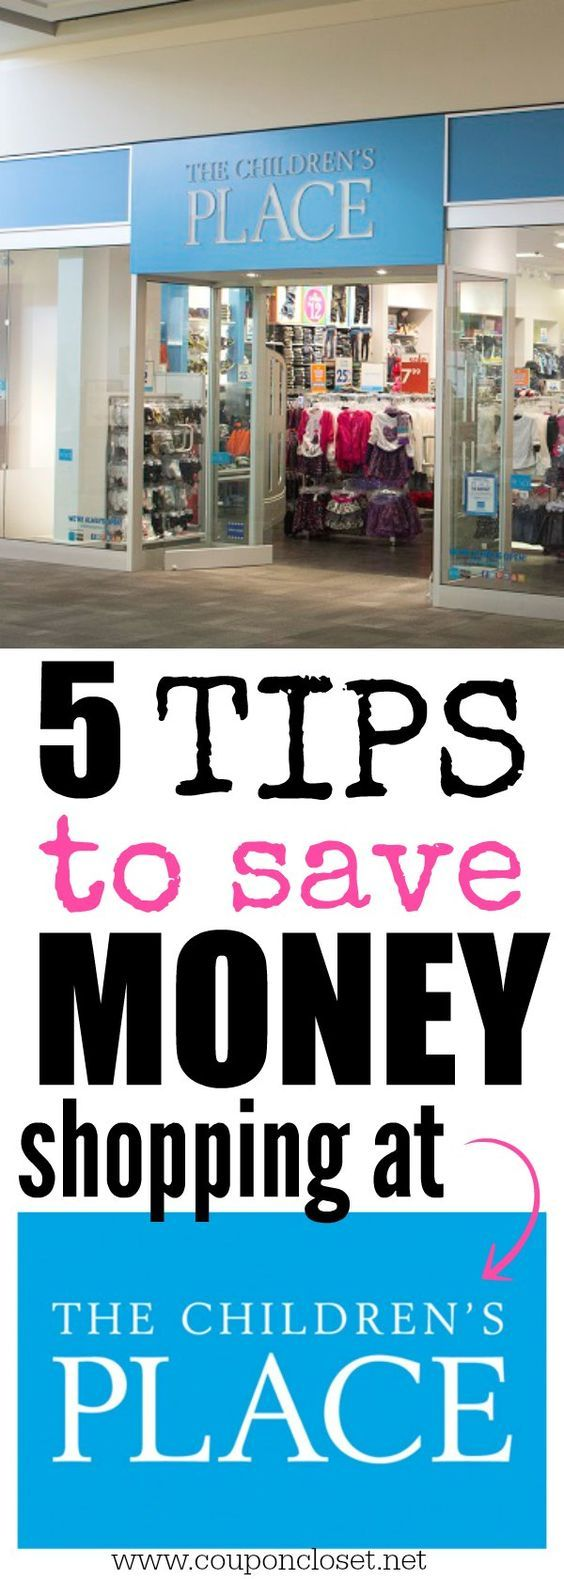 Easy Tips to Save at the Children's Place! the Children's place is one of the best place to find great clothing at great prices, especially after applying these easy tips!